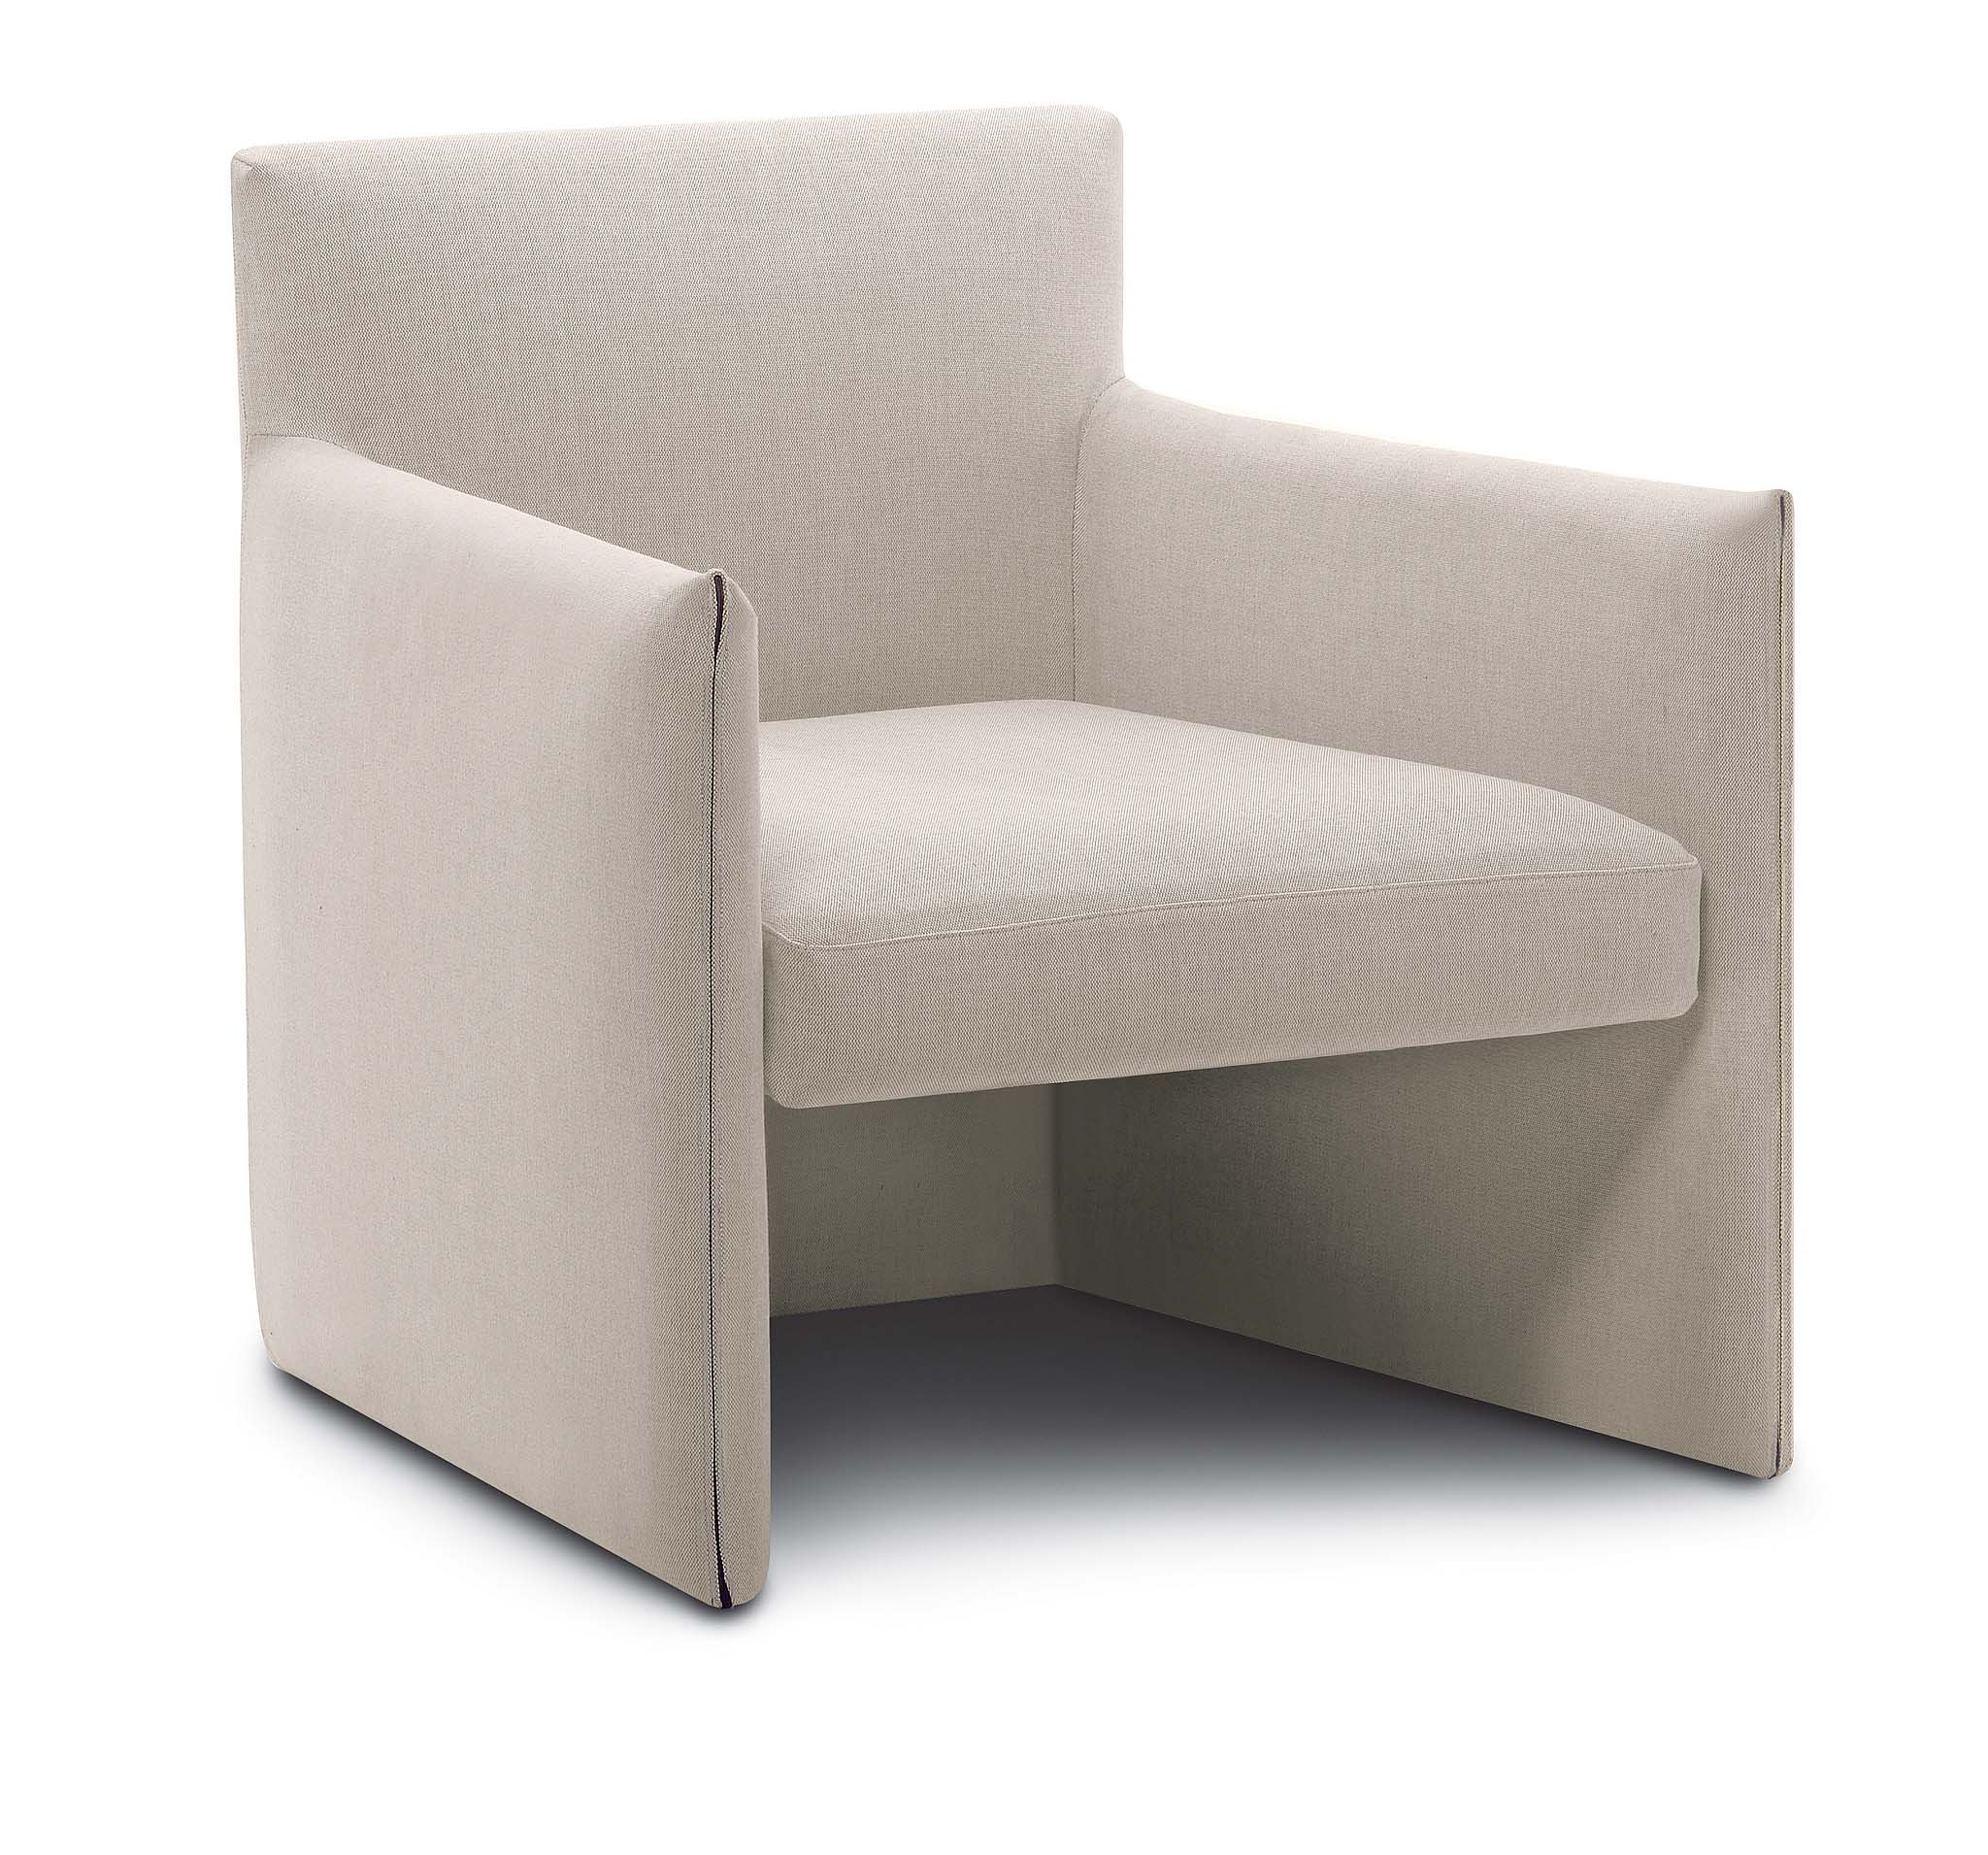 Double 021 Lounge Chair Domo